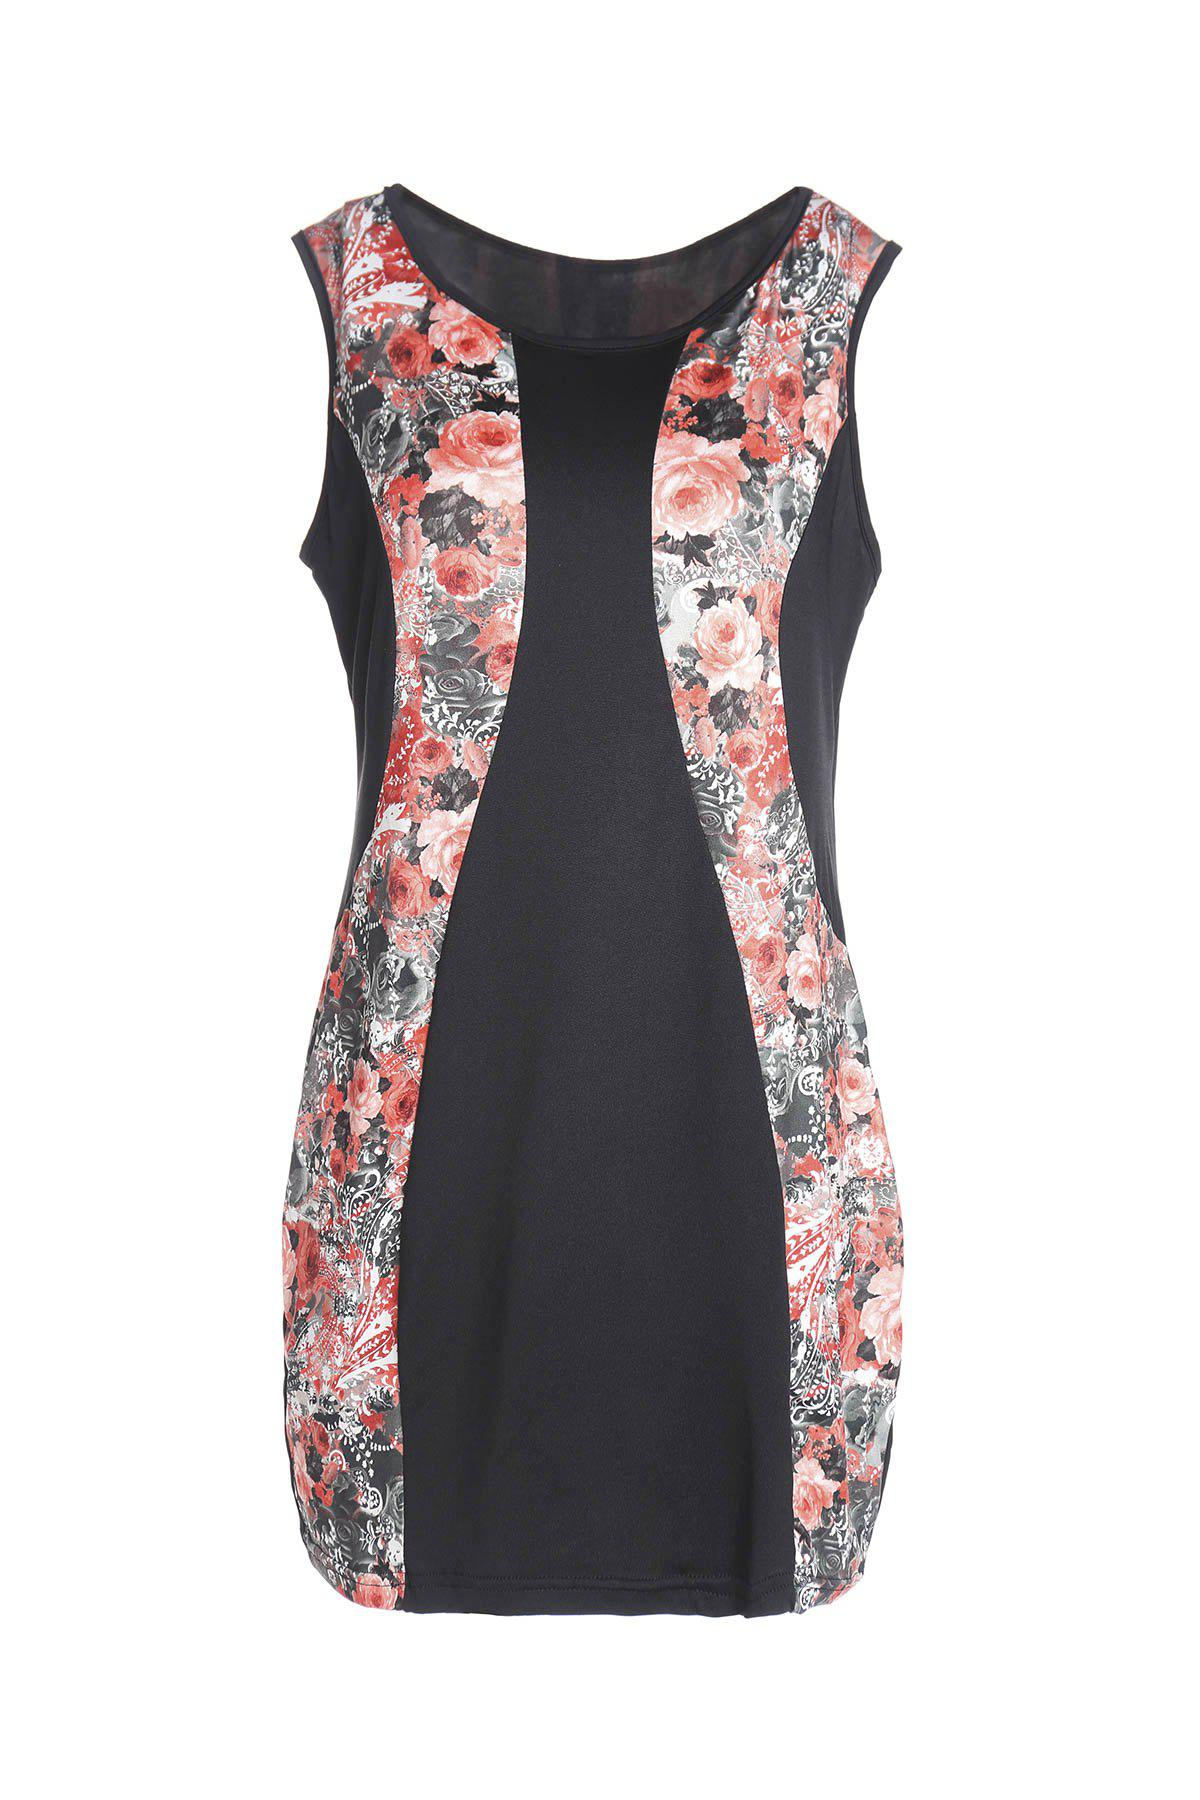 Charming Red Floral Print Sleeveless Bodycon Mini Dress For Women - RED 3XL